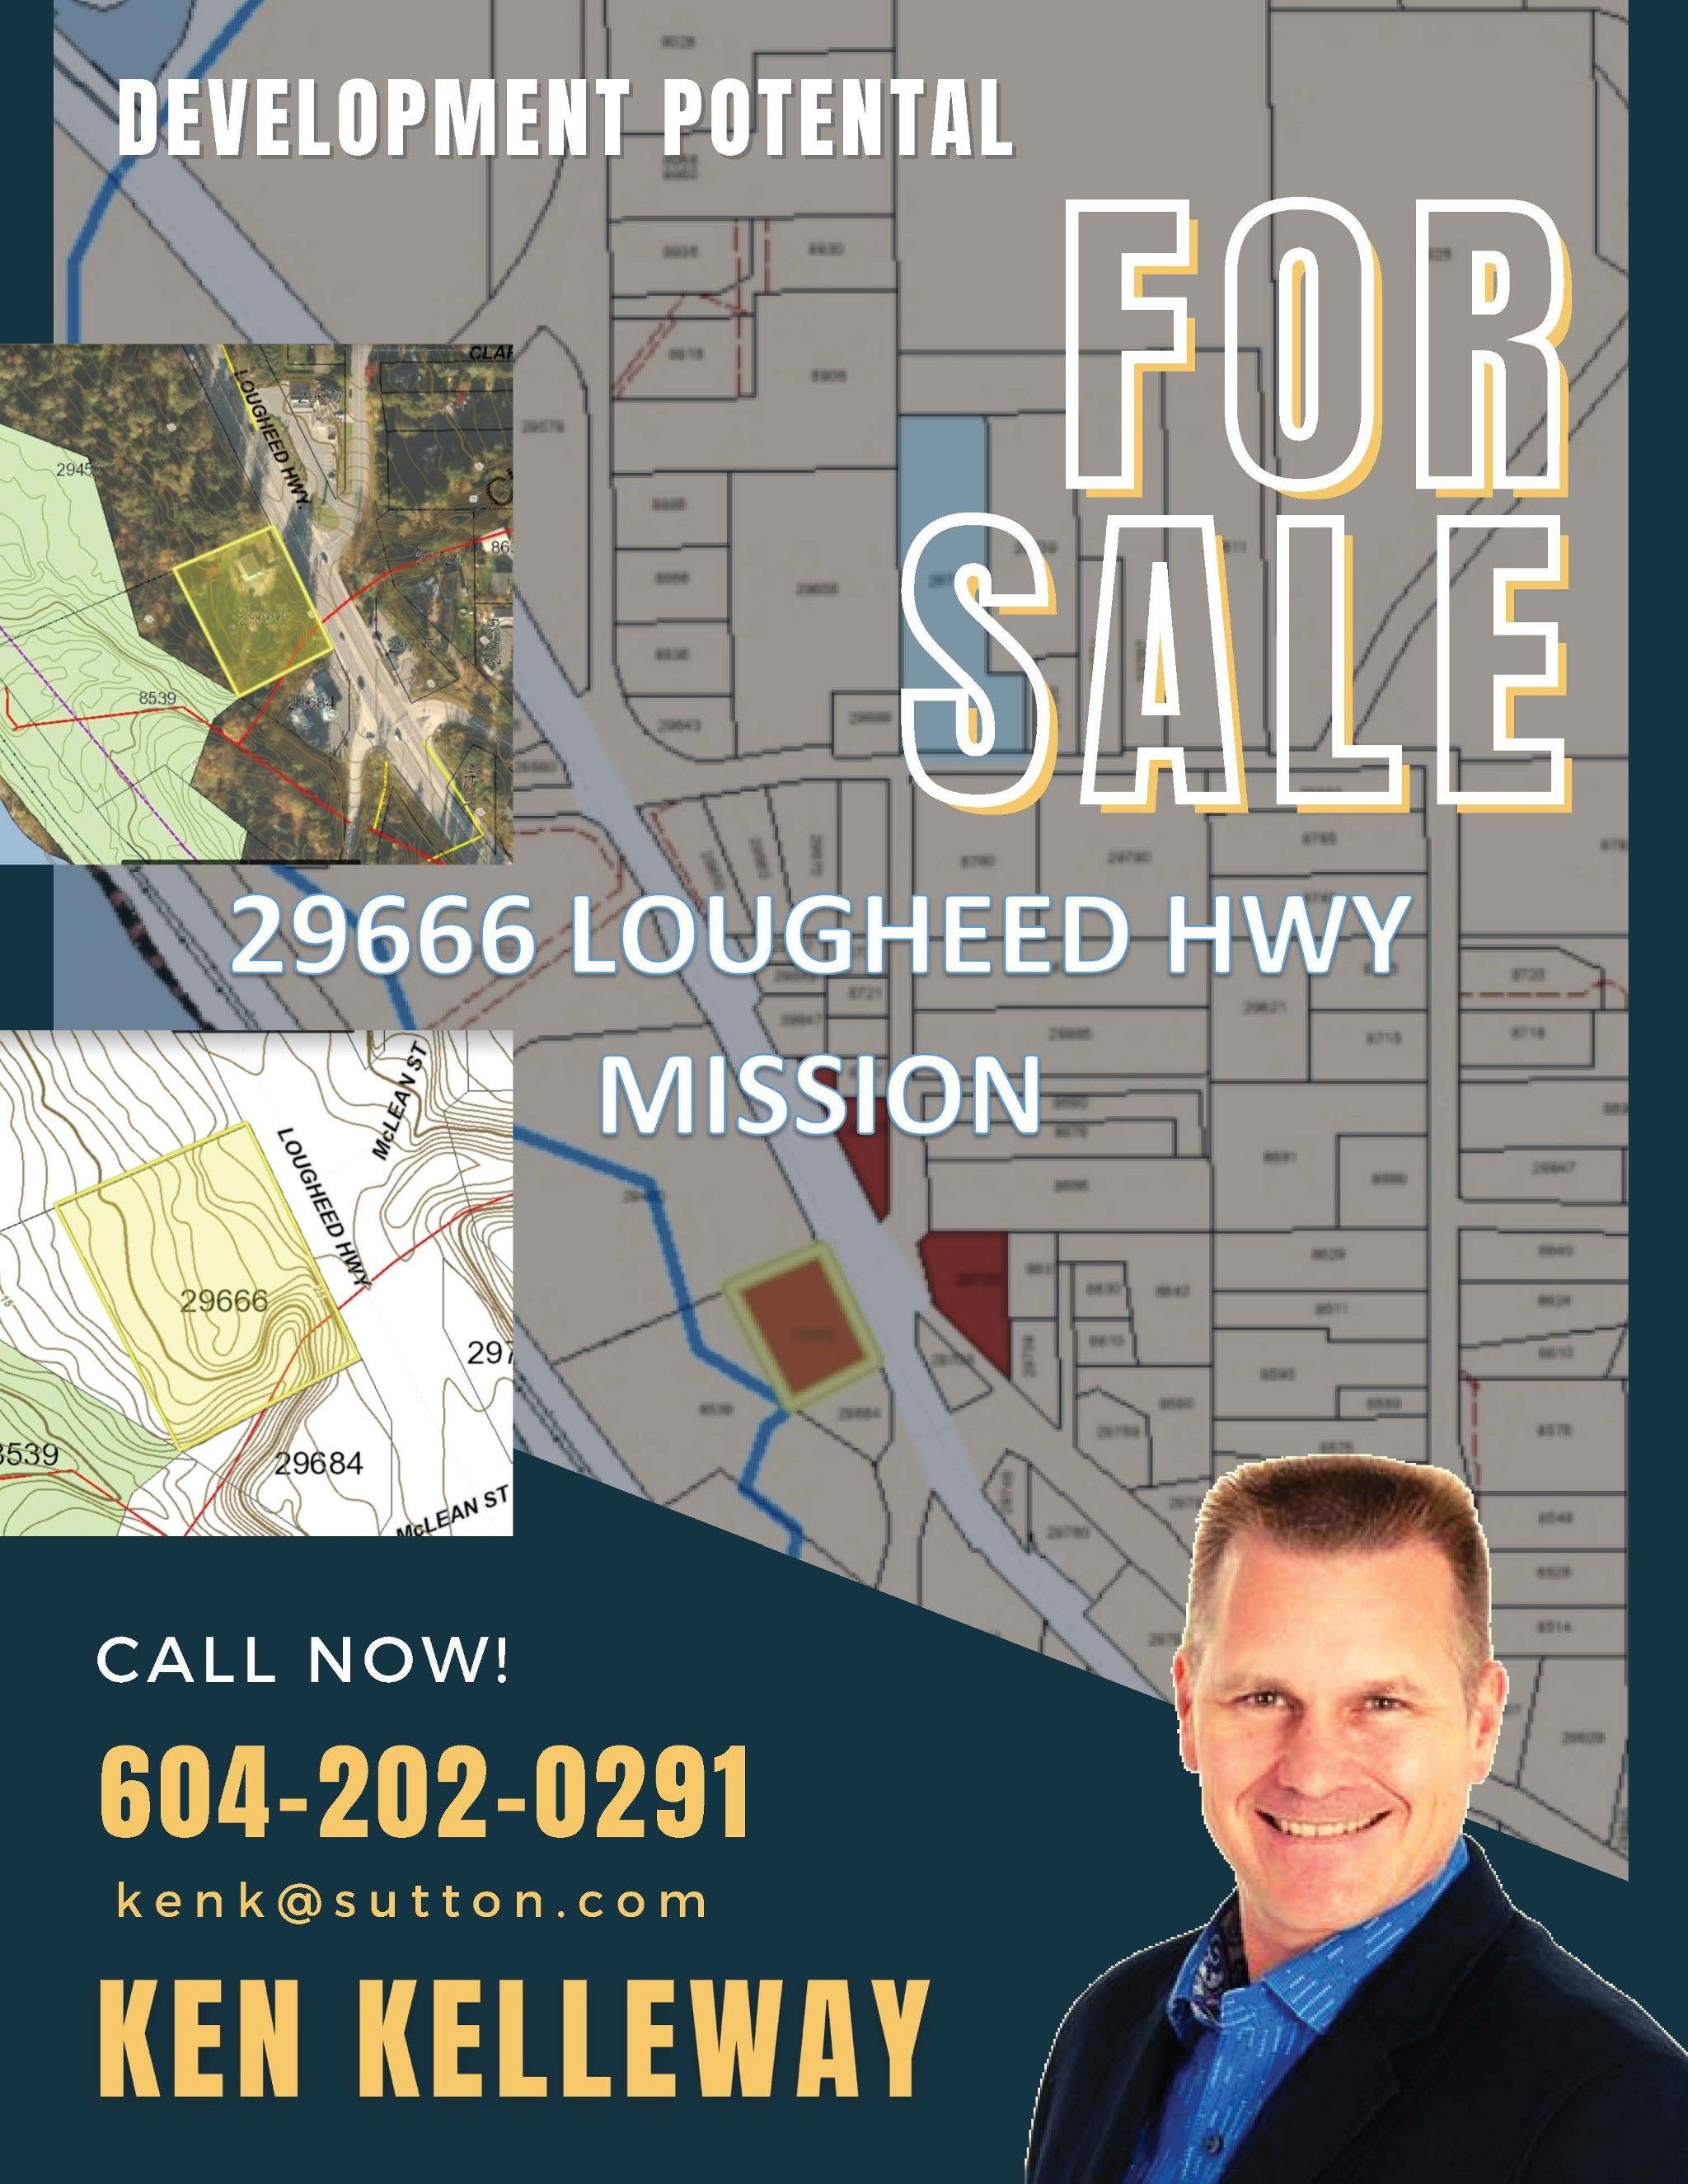 Main Photo: 29666 Lougheed hwy Highway in Silverdale: Commercial for sale (Mission)